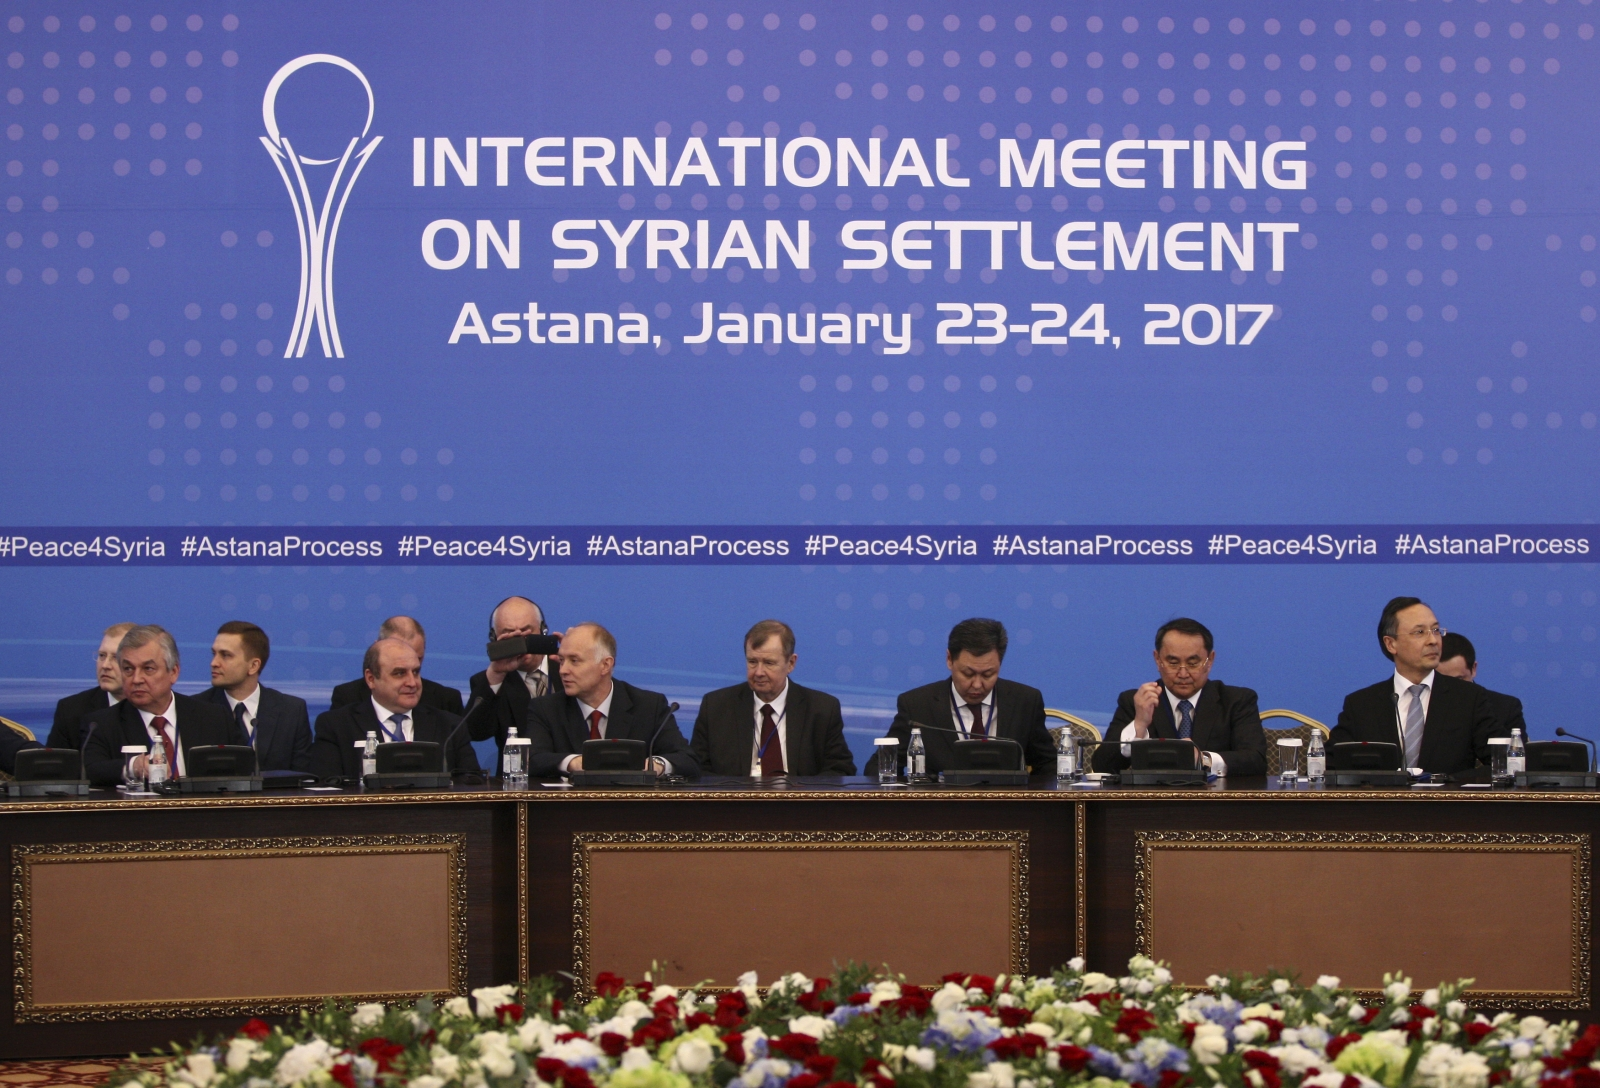 Participants of Syria peace talks